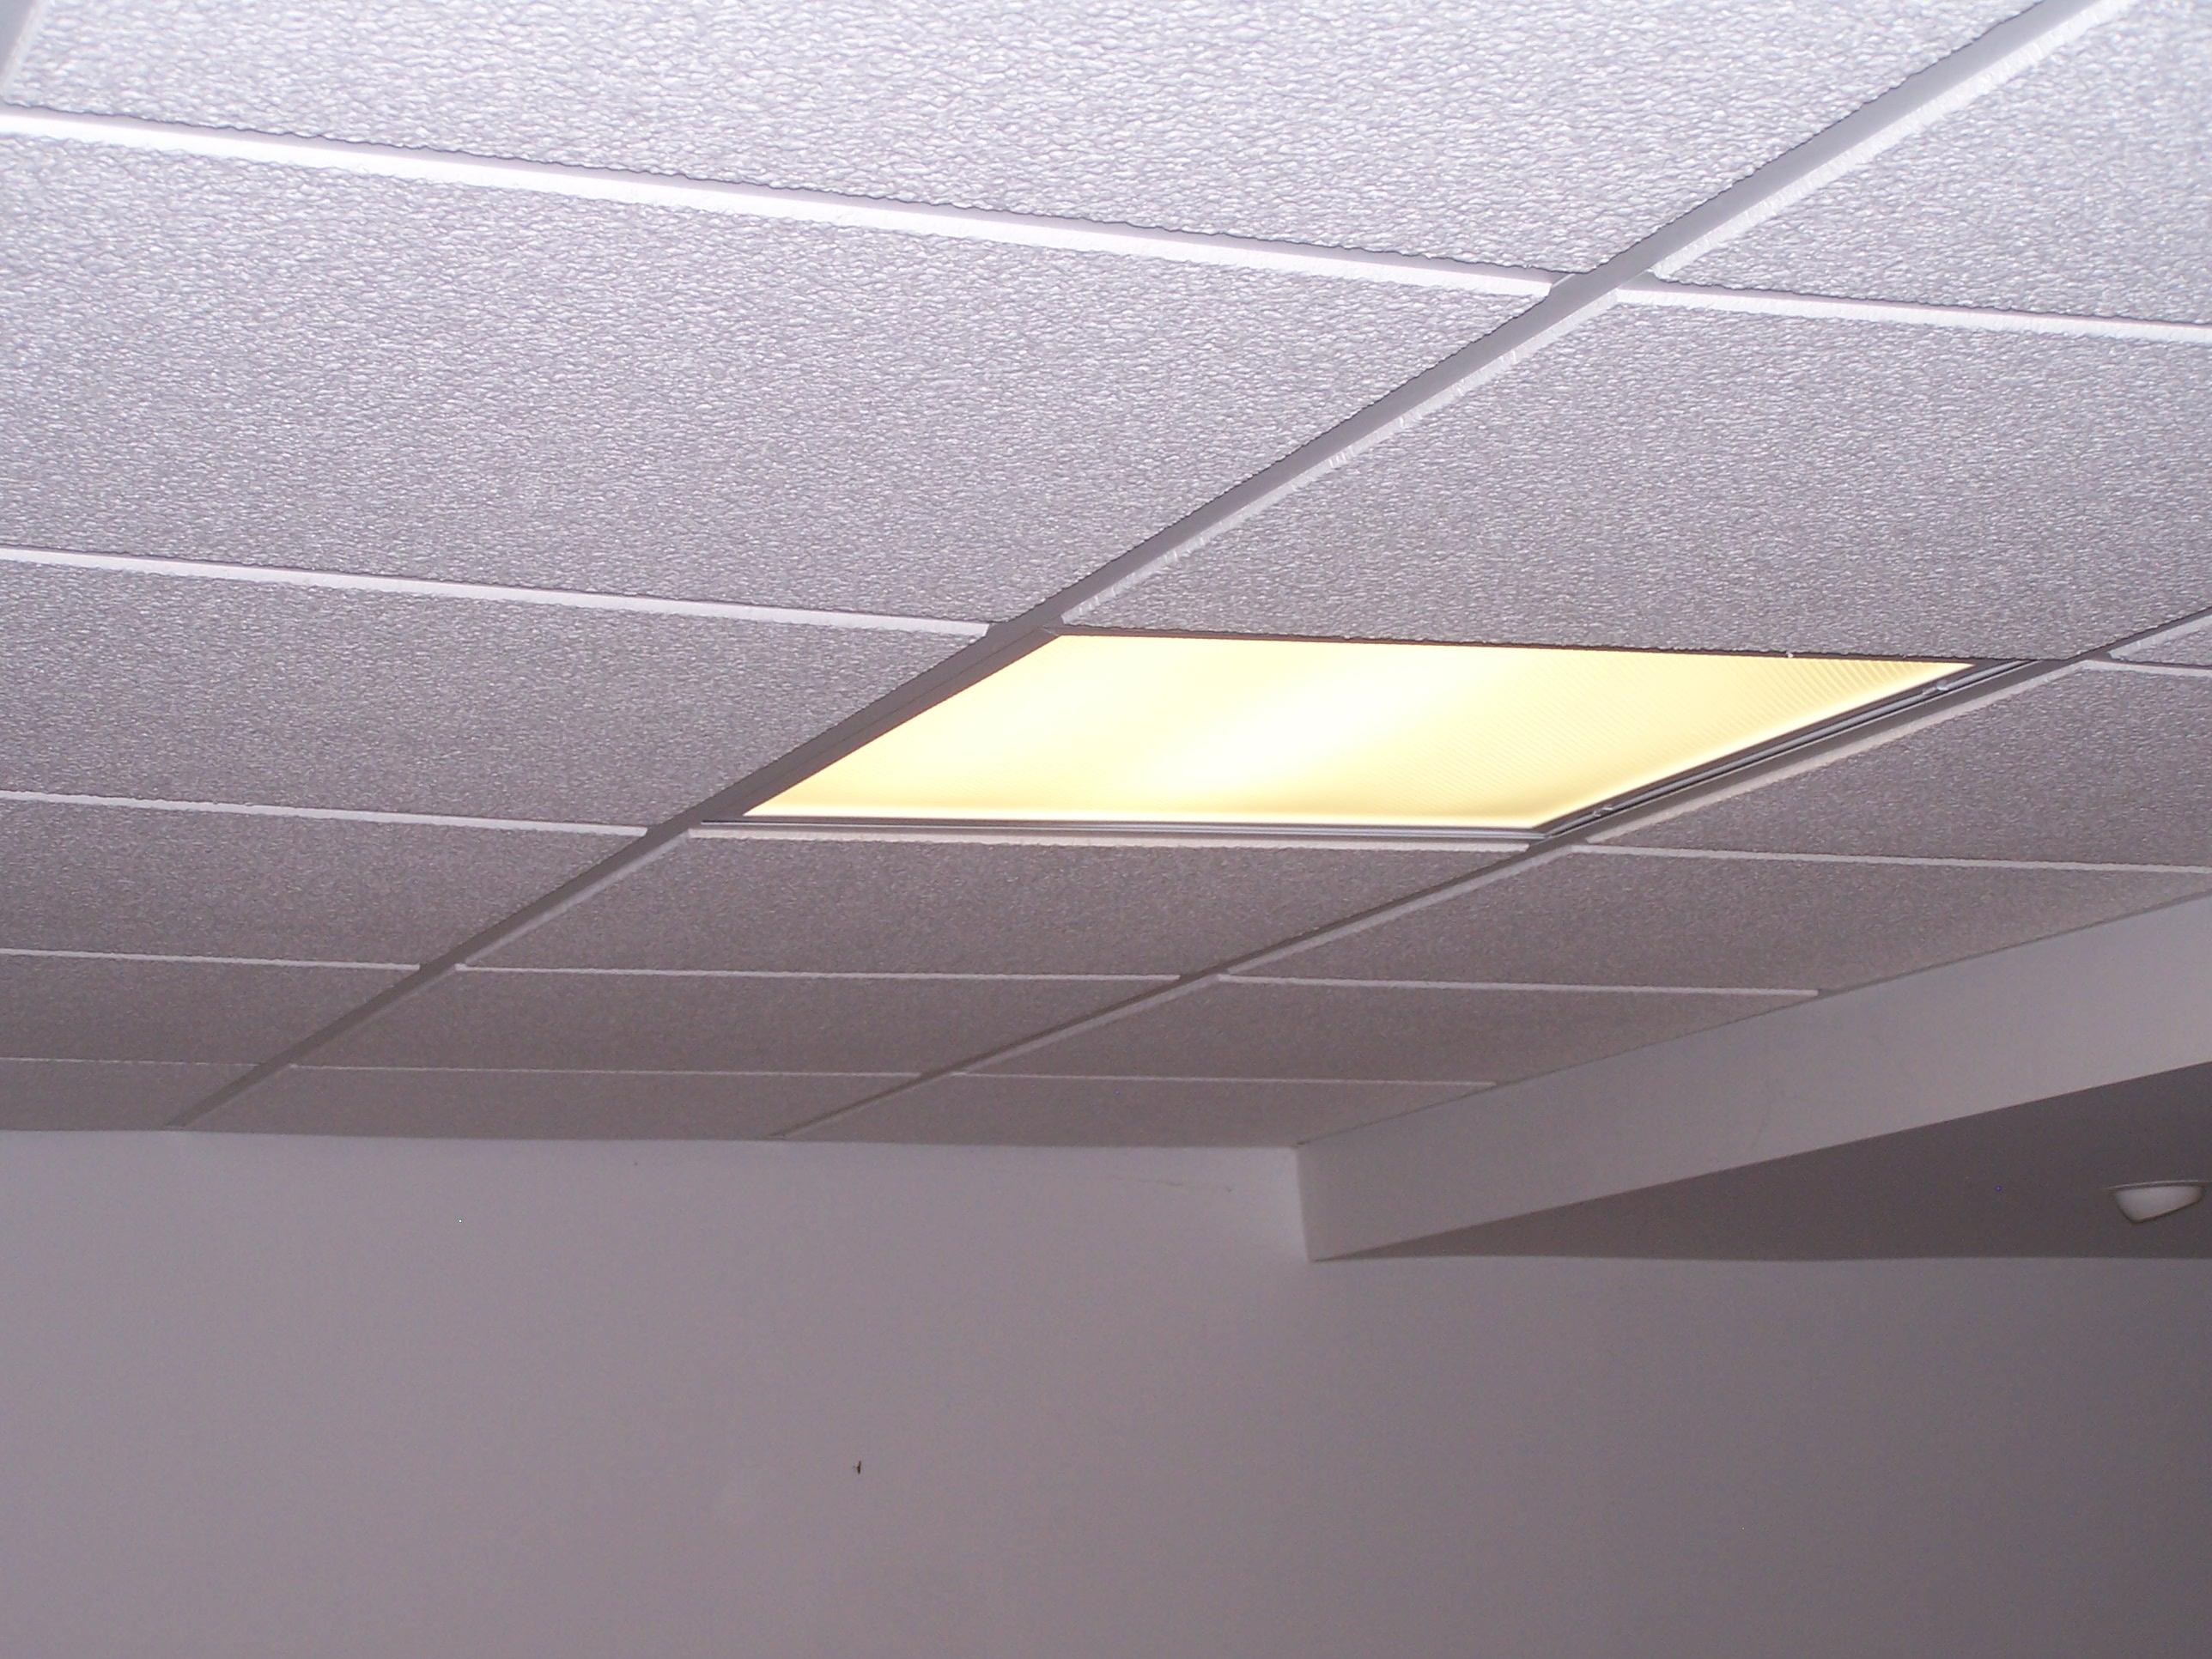 Basement Ceiling Light Covers